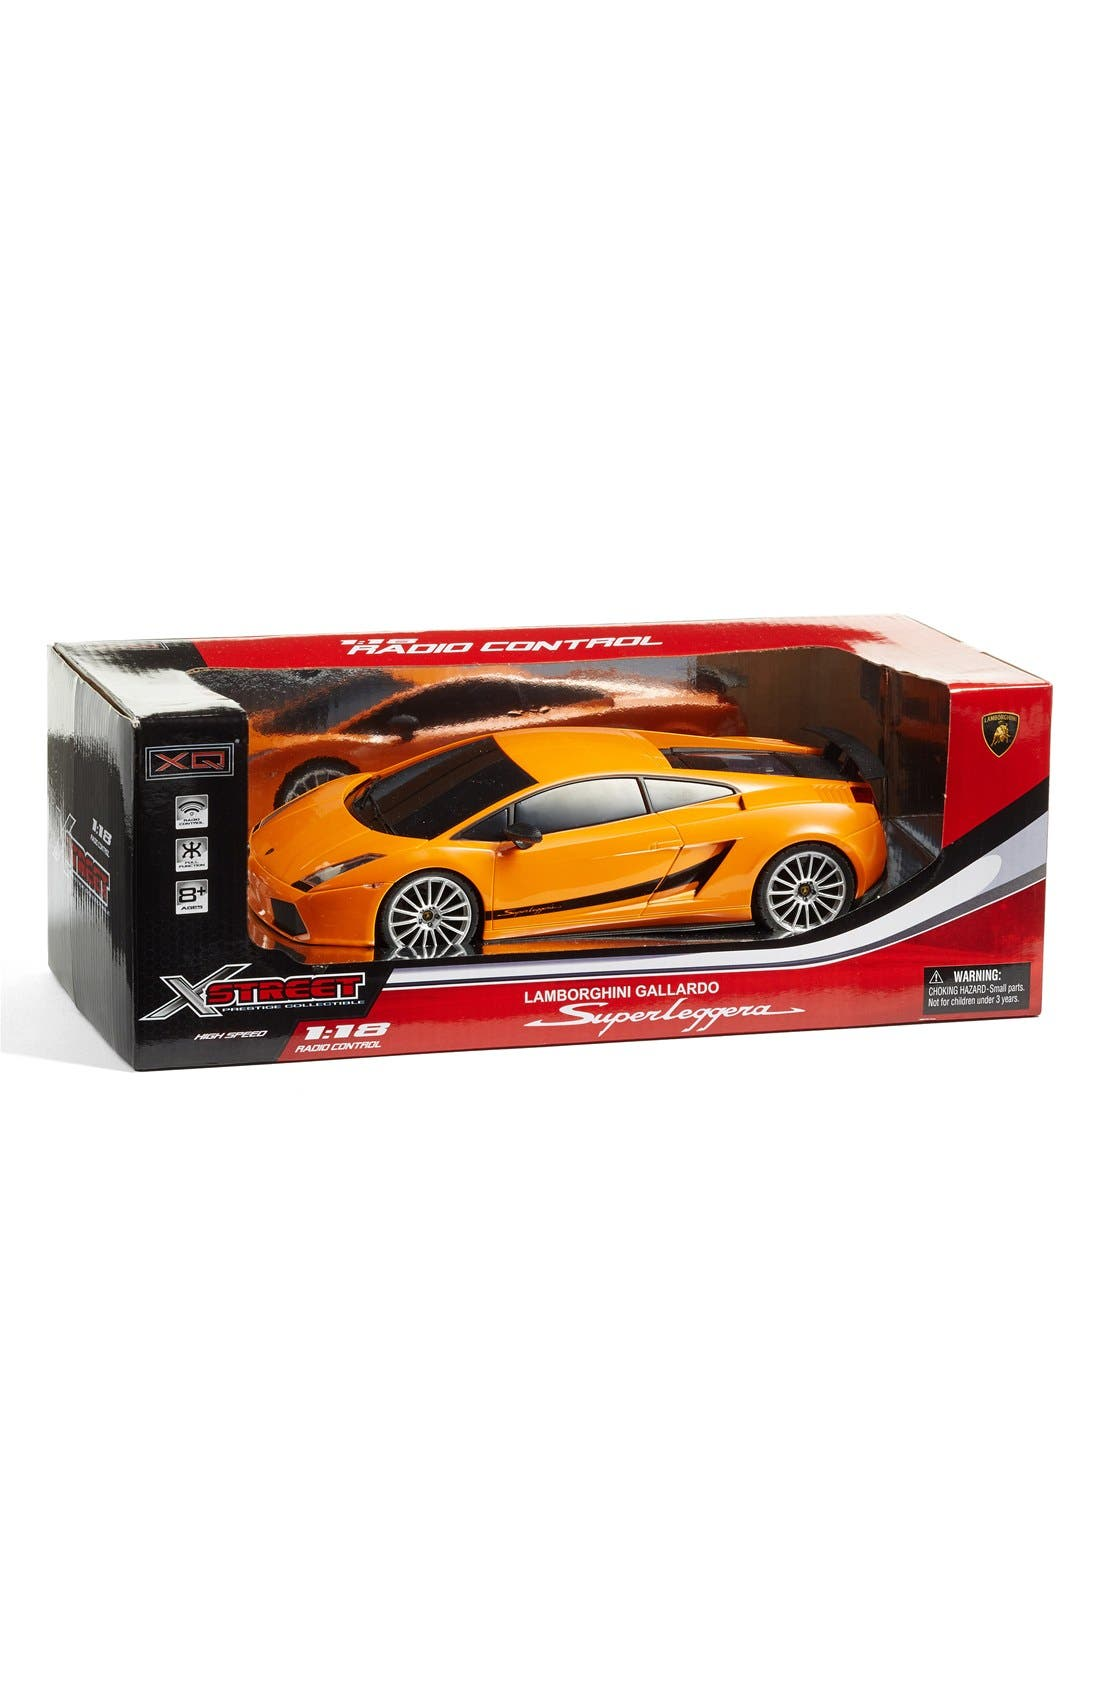 Lamborghini Superleggera 1:18 Scale Remote Control Car Toy,                             Alternate thumbnail 2, color,                             Orange